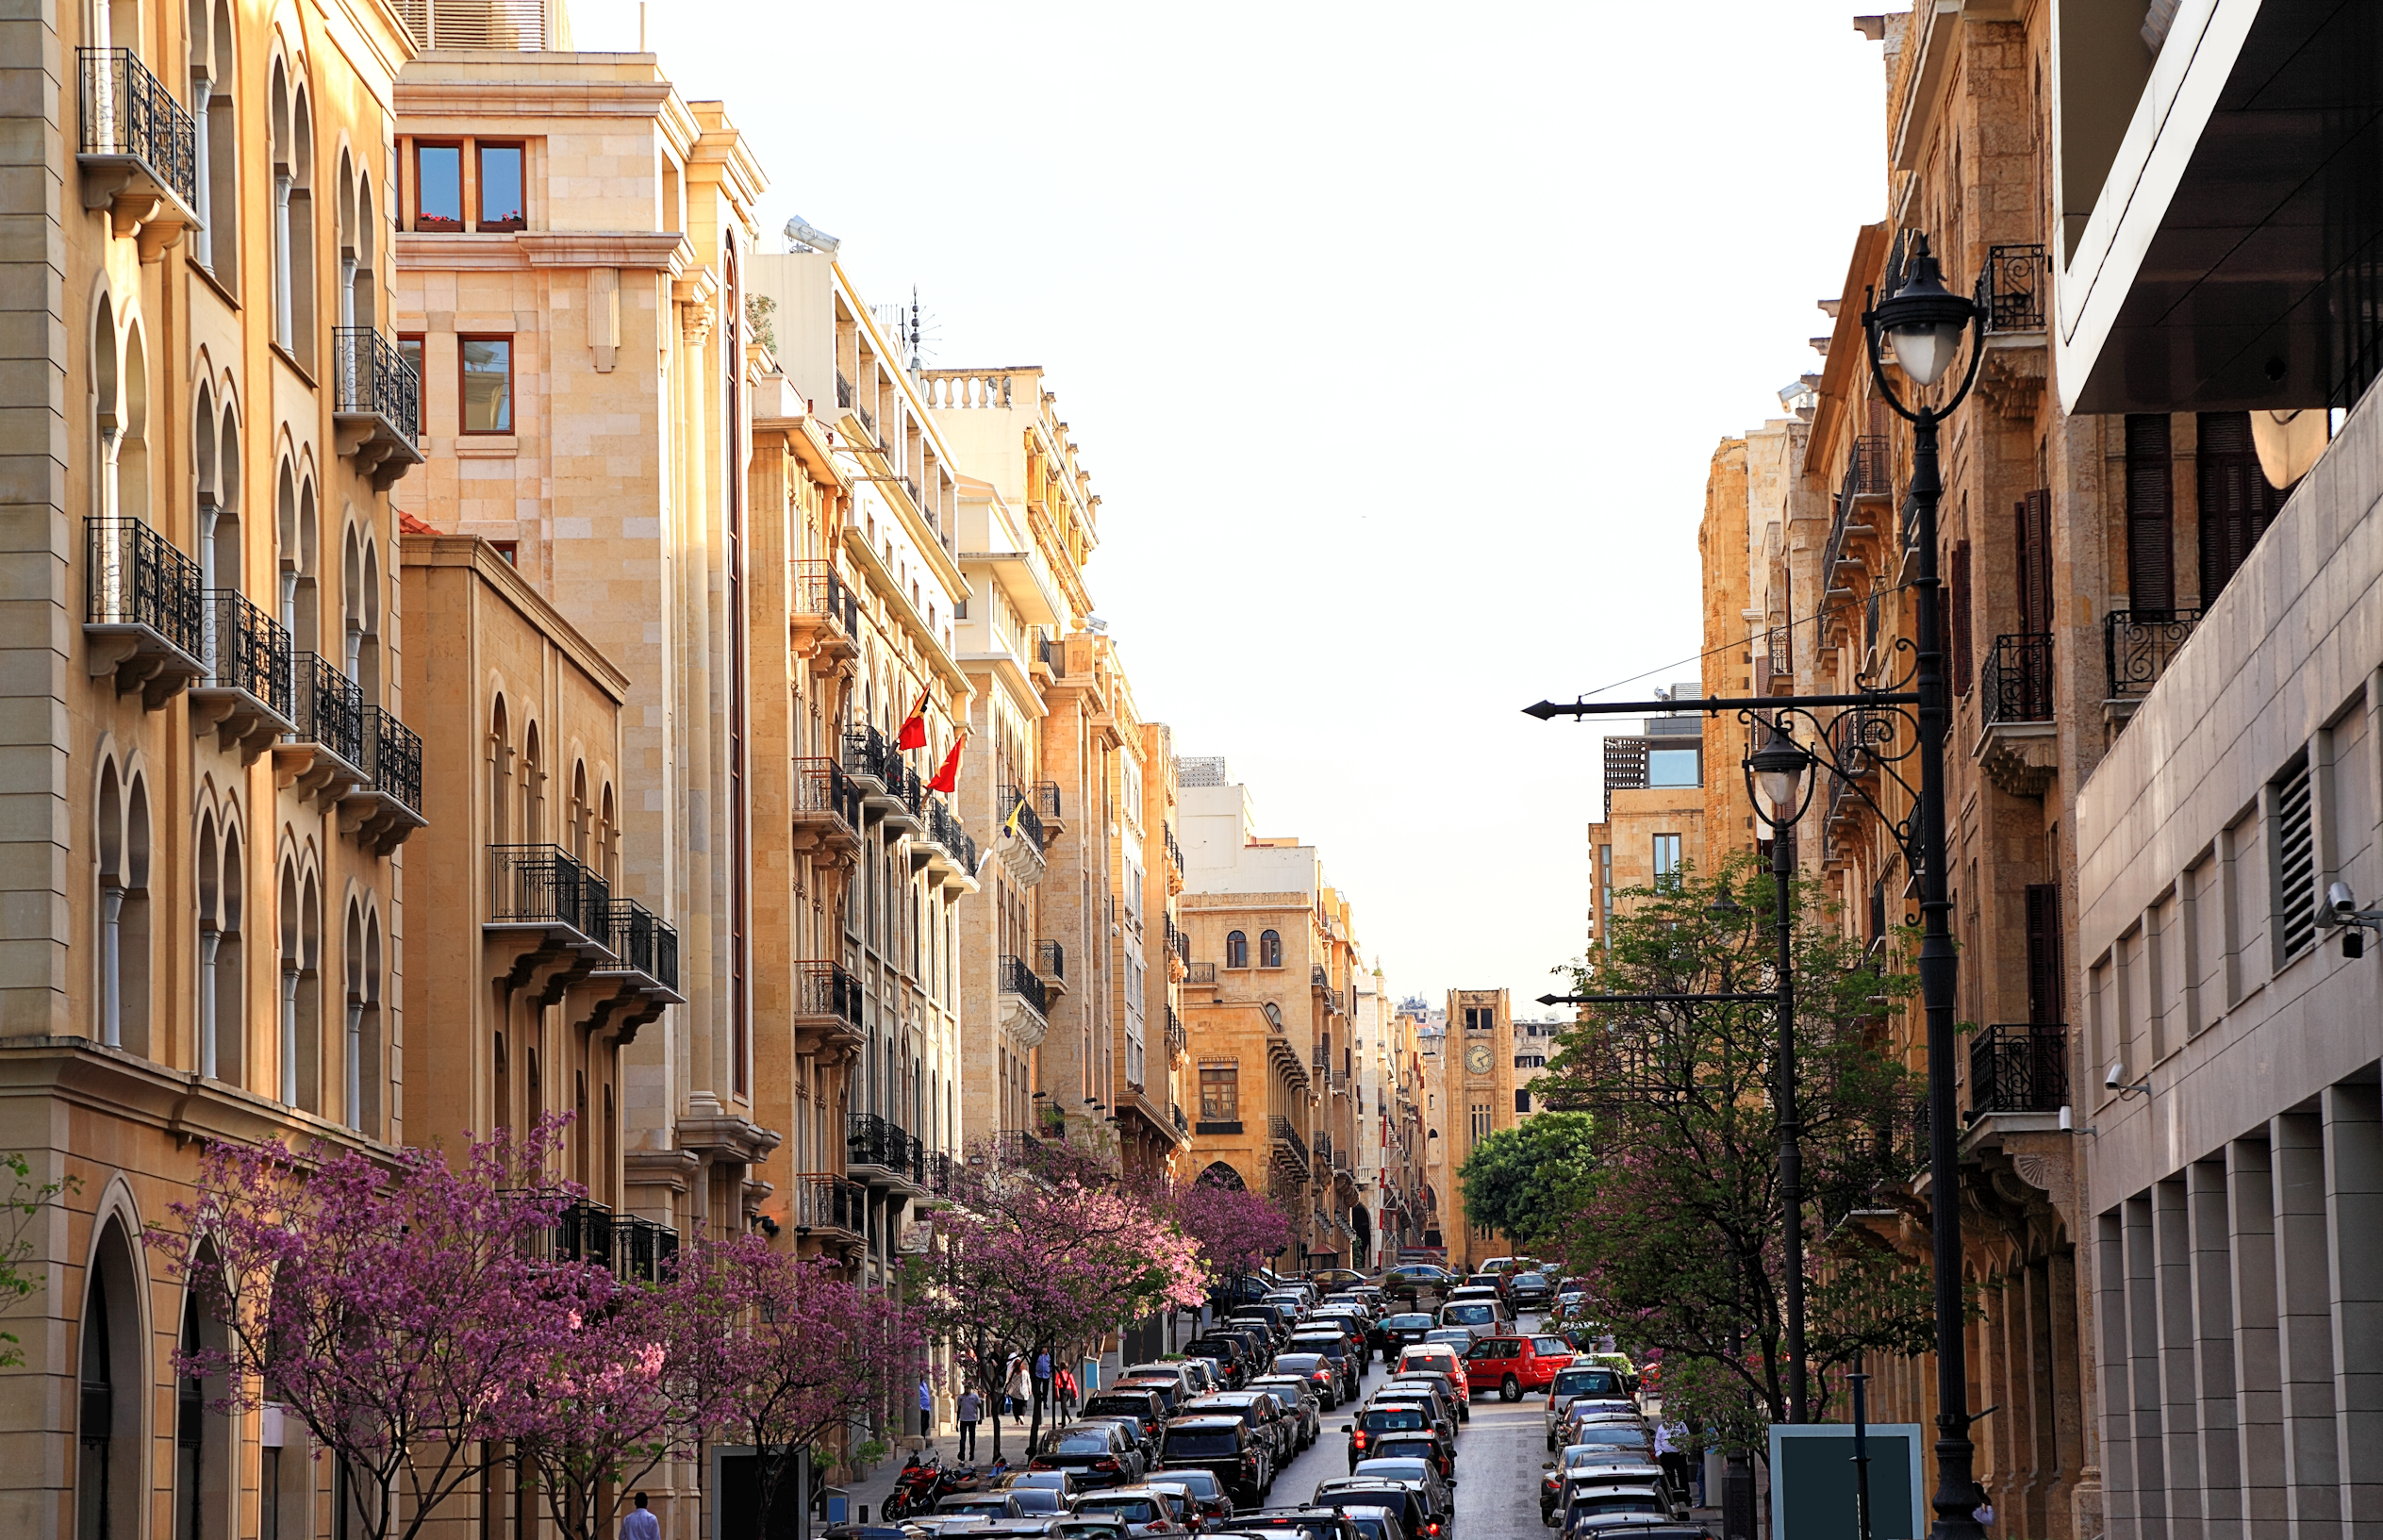 Parts of Beirut built by the French -- giving the city the moniker 'Paris of the East' -- have been restored to their original glory, post the civil war